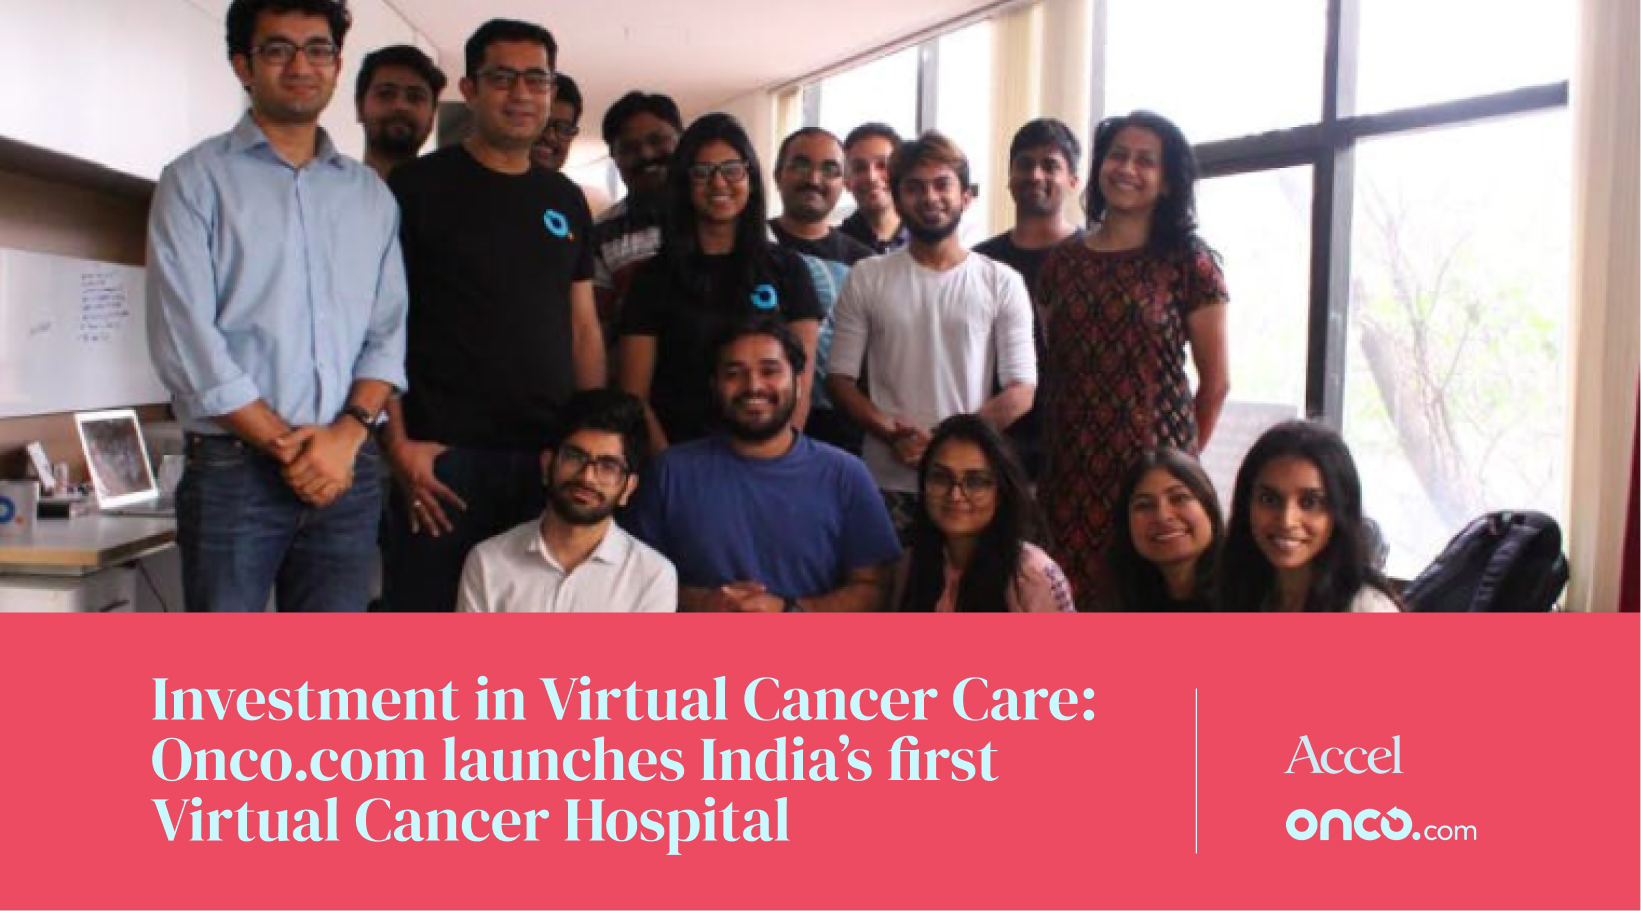 Investment in Virtual Cancer Care: Onco.com launches India's first Virtual Cancer Hospital